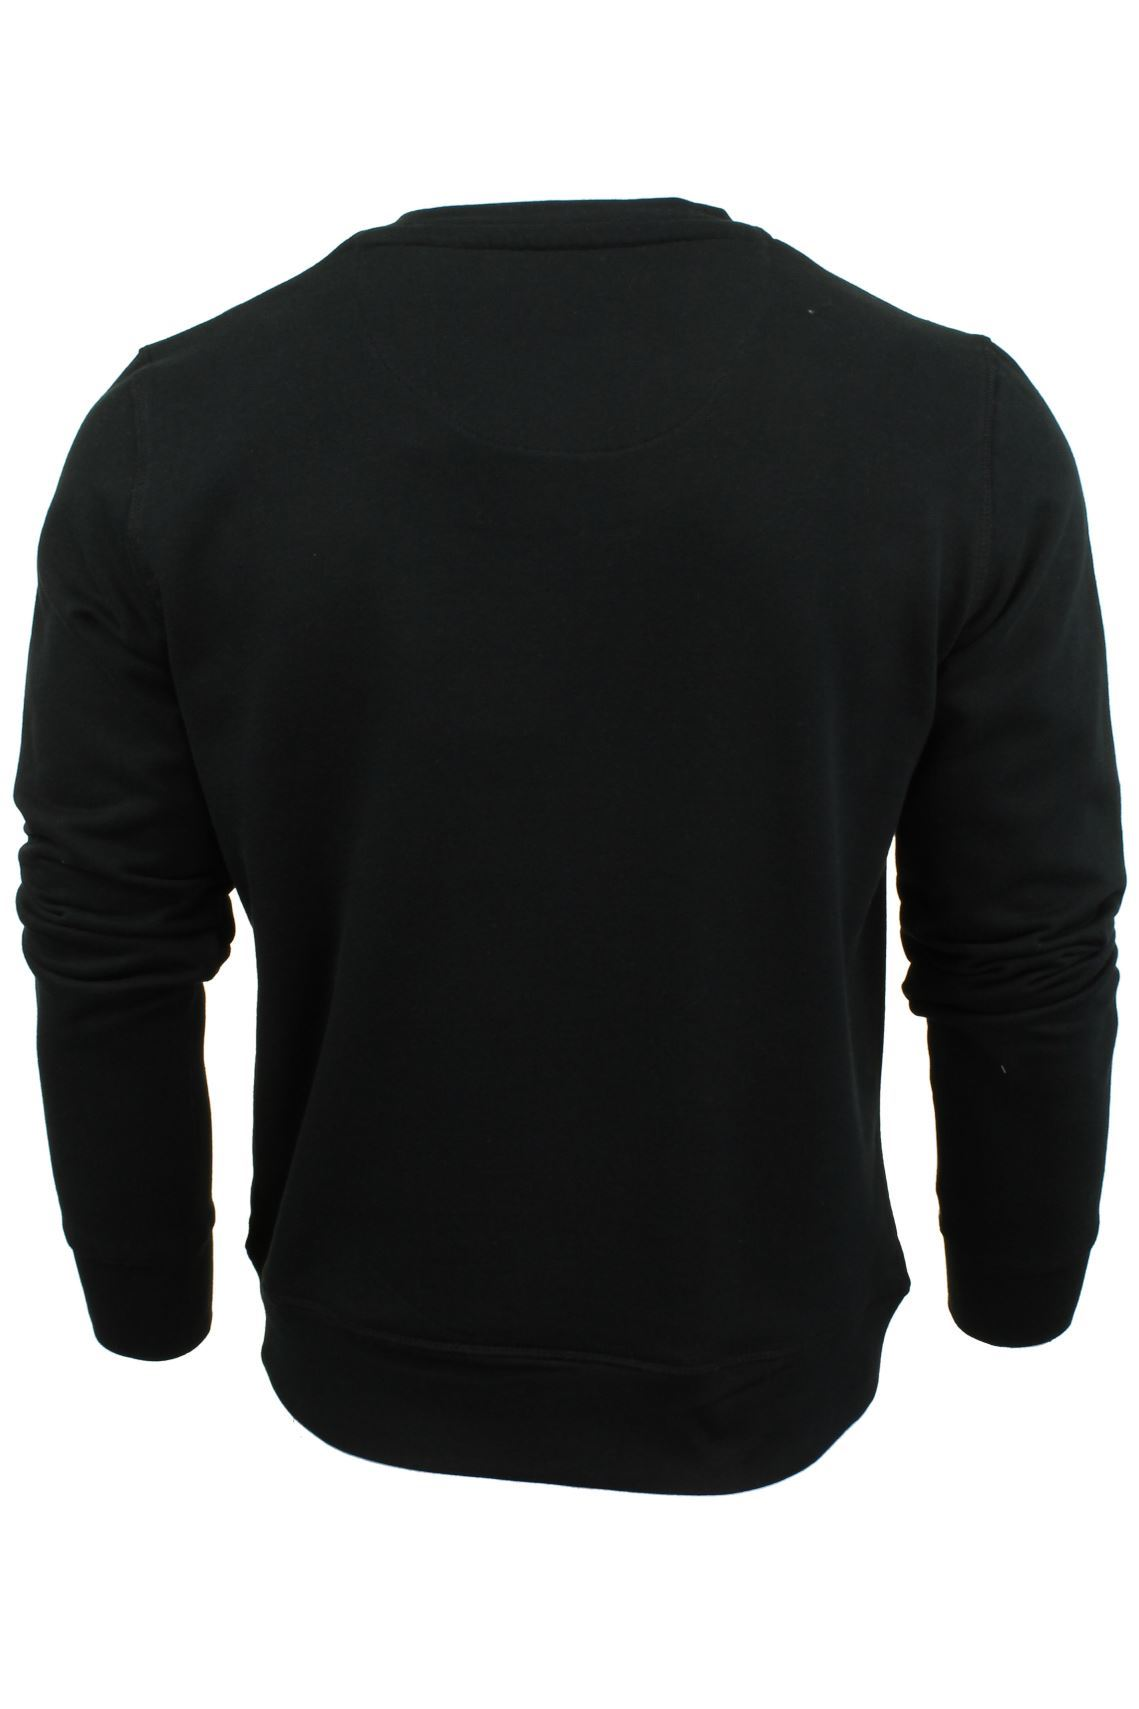 Mens-Sweater-Jumper-Brave-Soul-Jones-Crew-Neck-Sweatshirt thumbnail 5